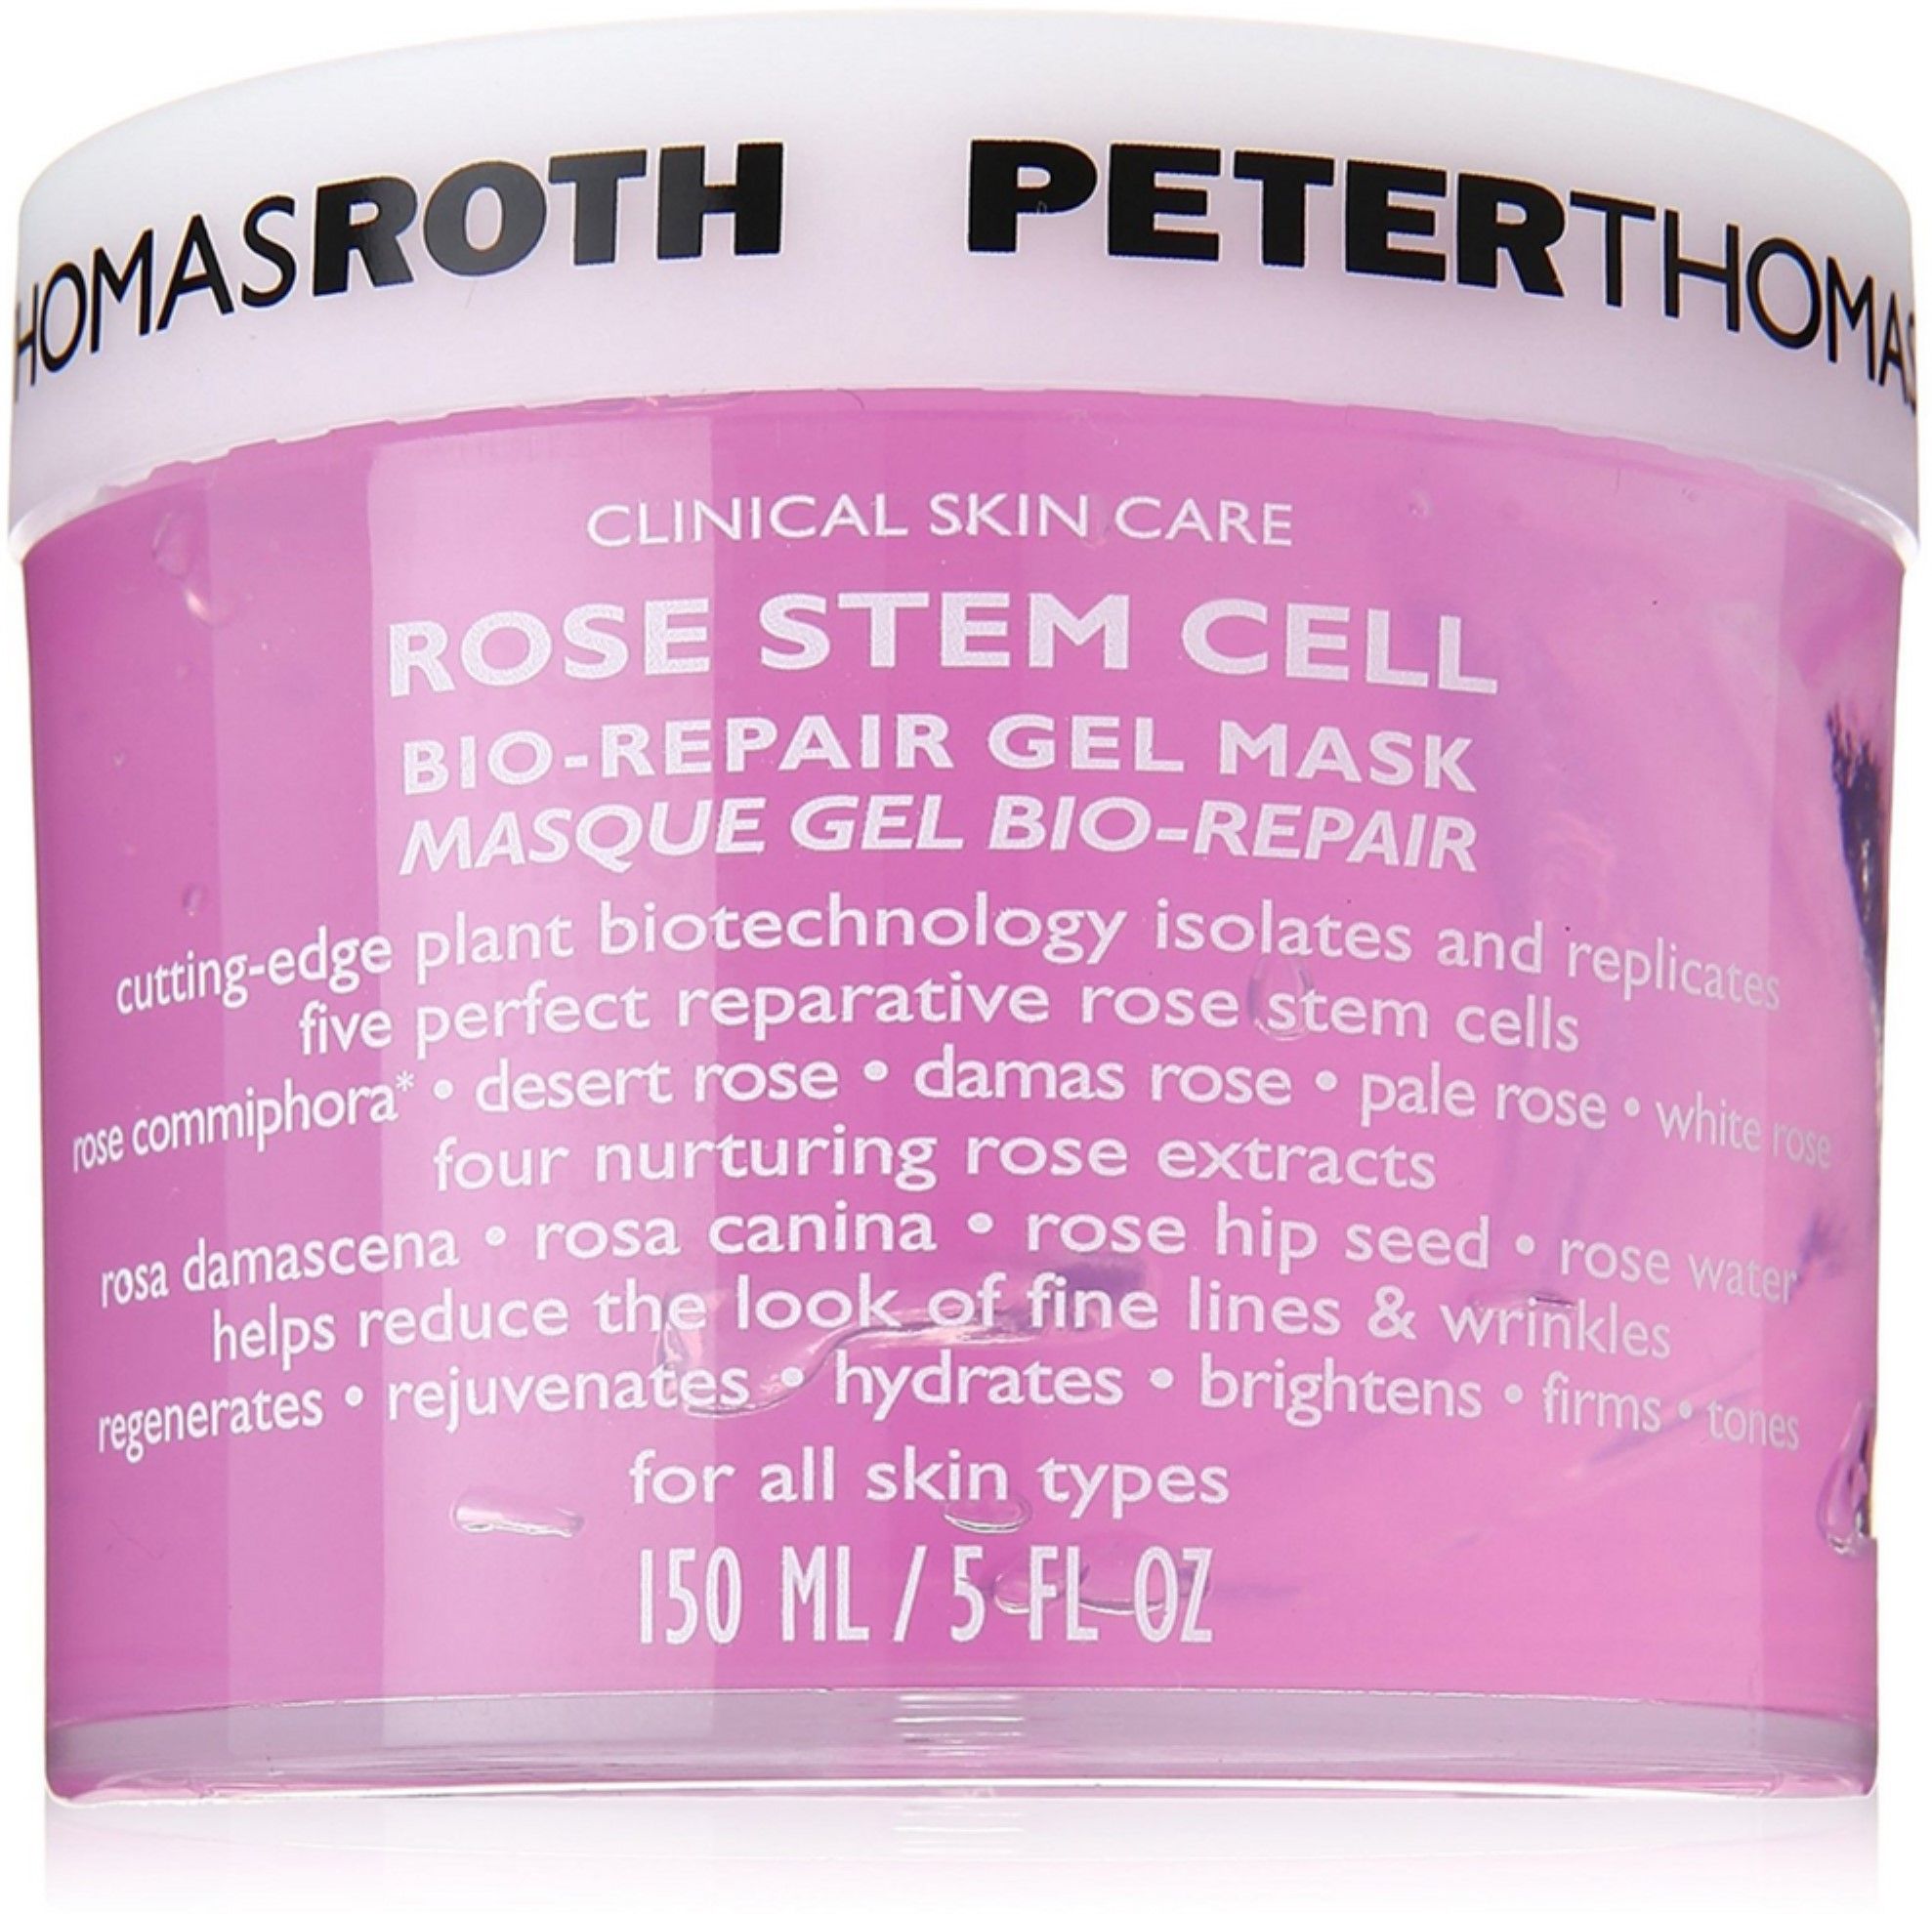 6 Pack - Peter Thomas Roth Rose Stem Cell Bio Repair Gel Mask 5 oz Silicone Electric Face Cleaning Massager Ultrasonic Vibration Brush Deep Cleansing Exfoliating Blackheads Facial Skin Care